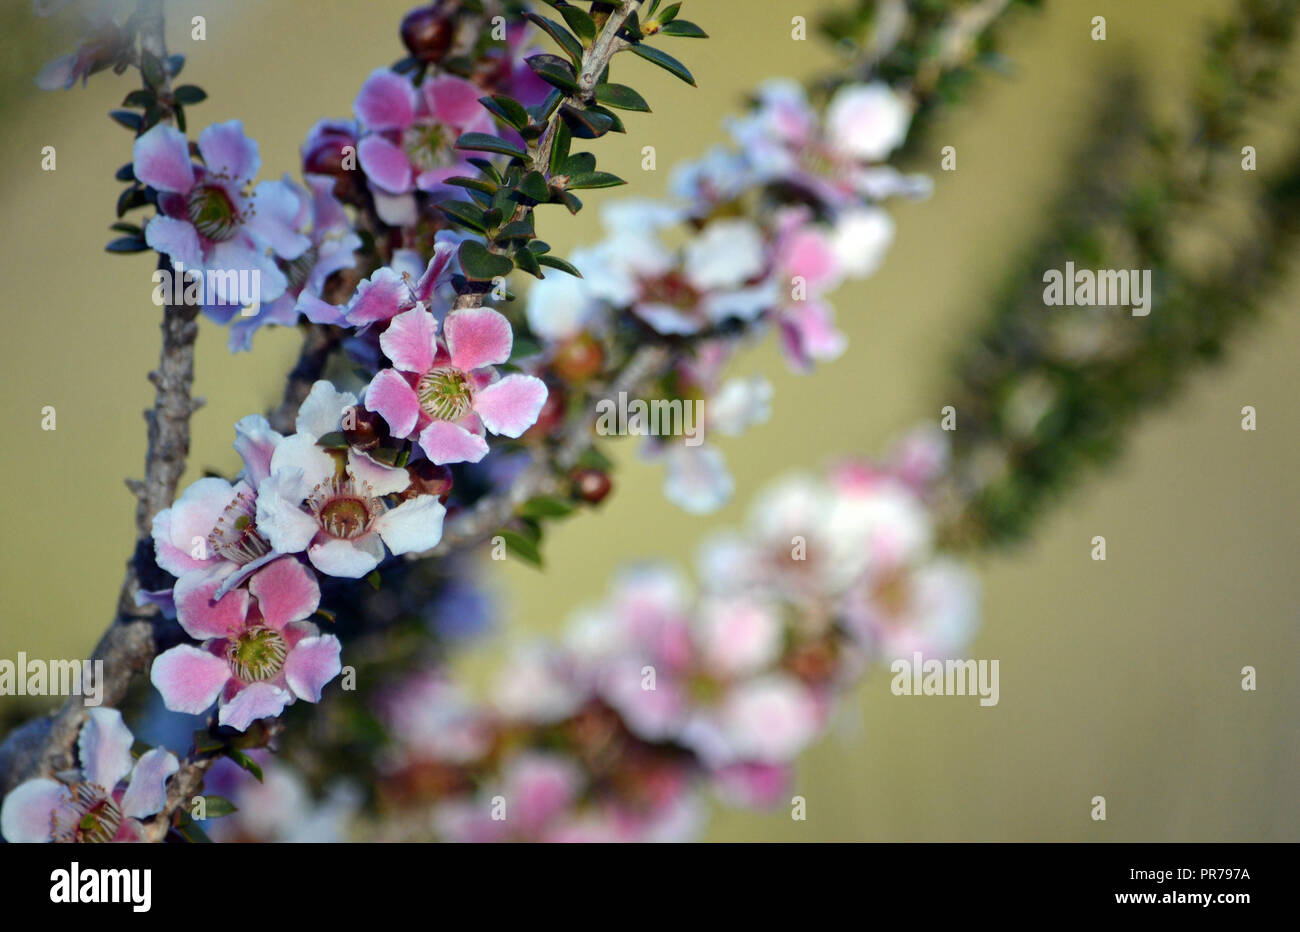 Pink And White Flowers And Buds Of The Peach Blossom Tea Tree